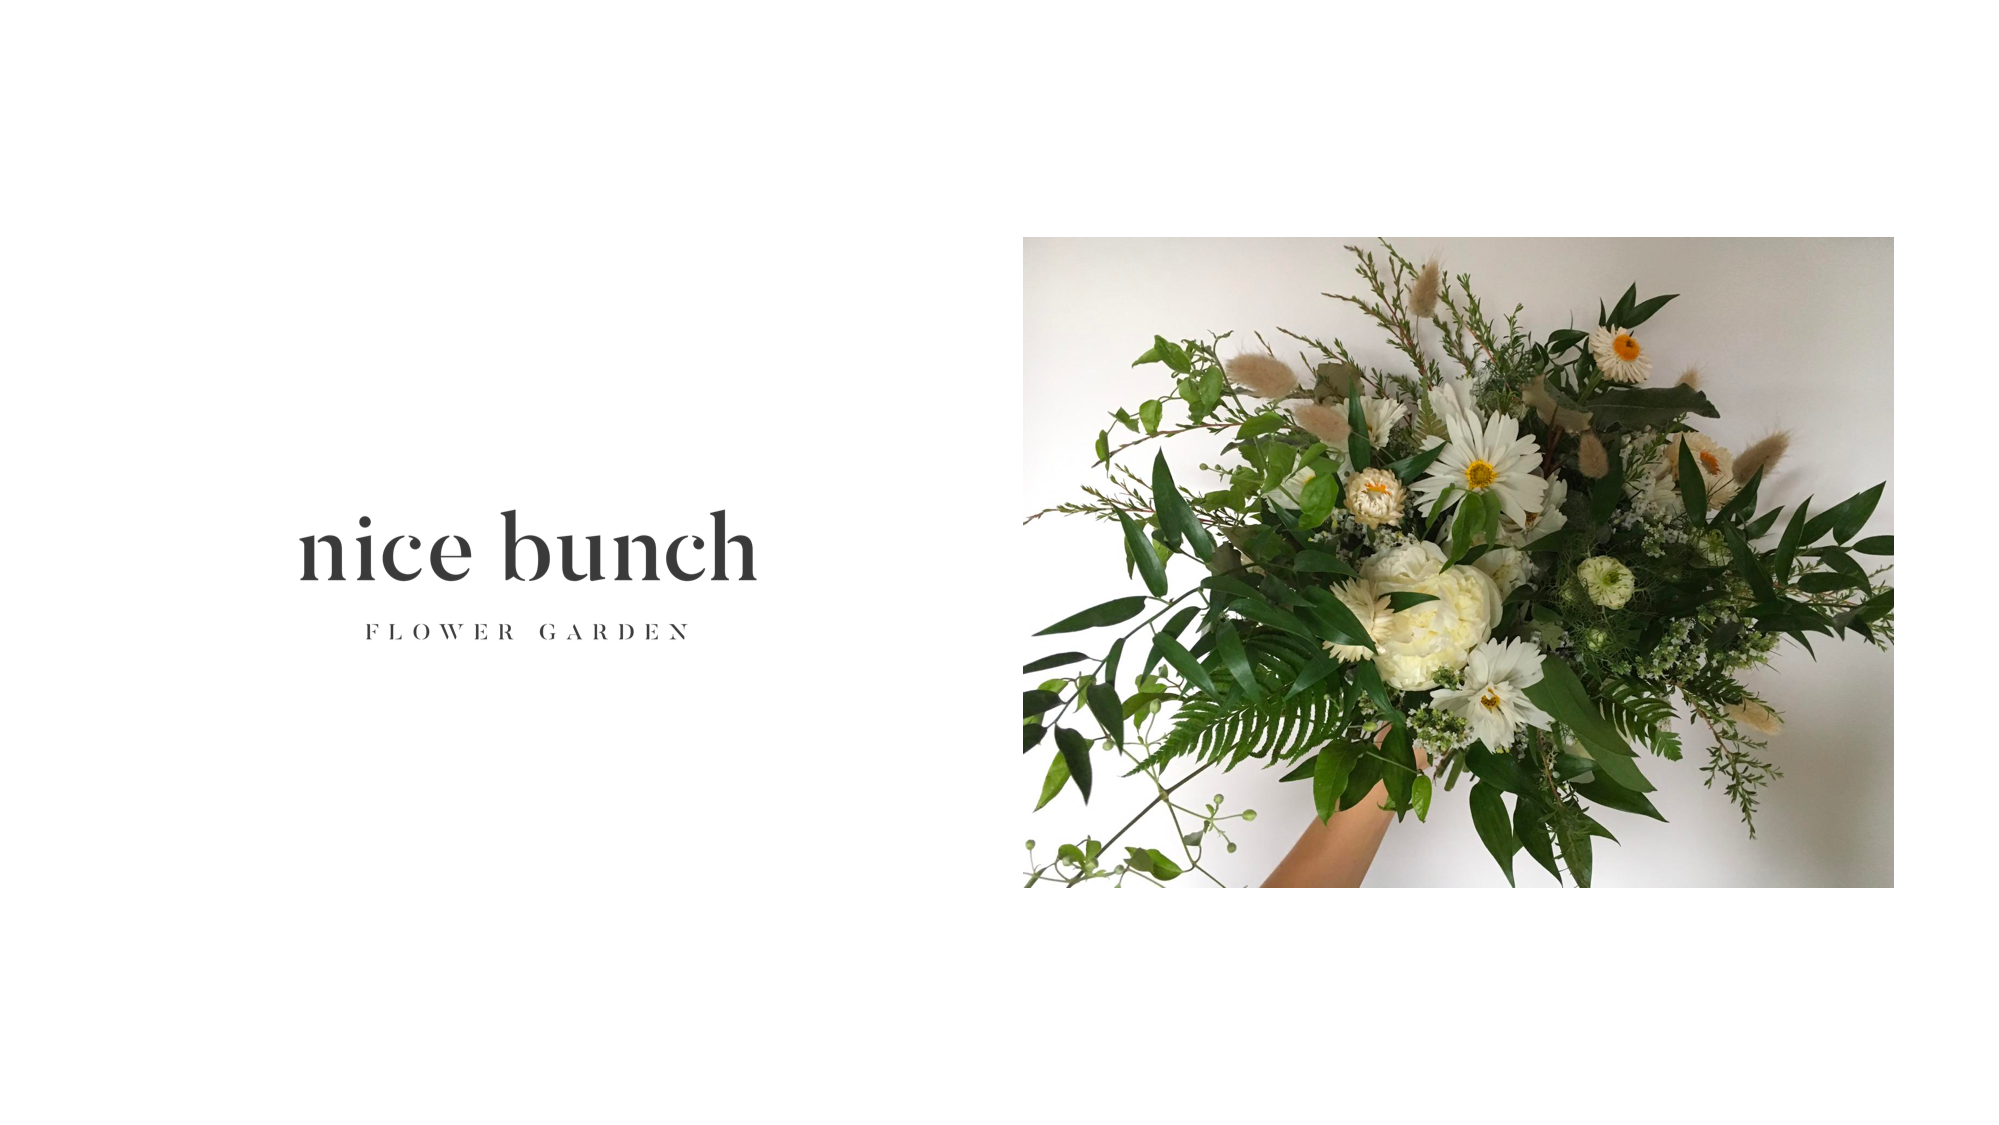 Nicebunch flowers sula location the mildmay club london hackney ethical british luxury bouquet